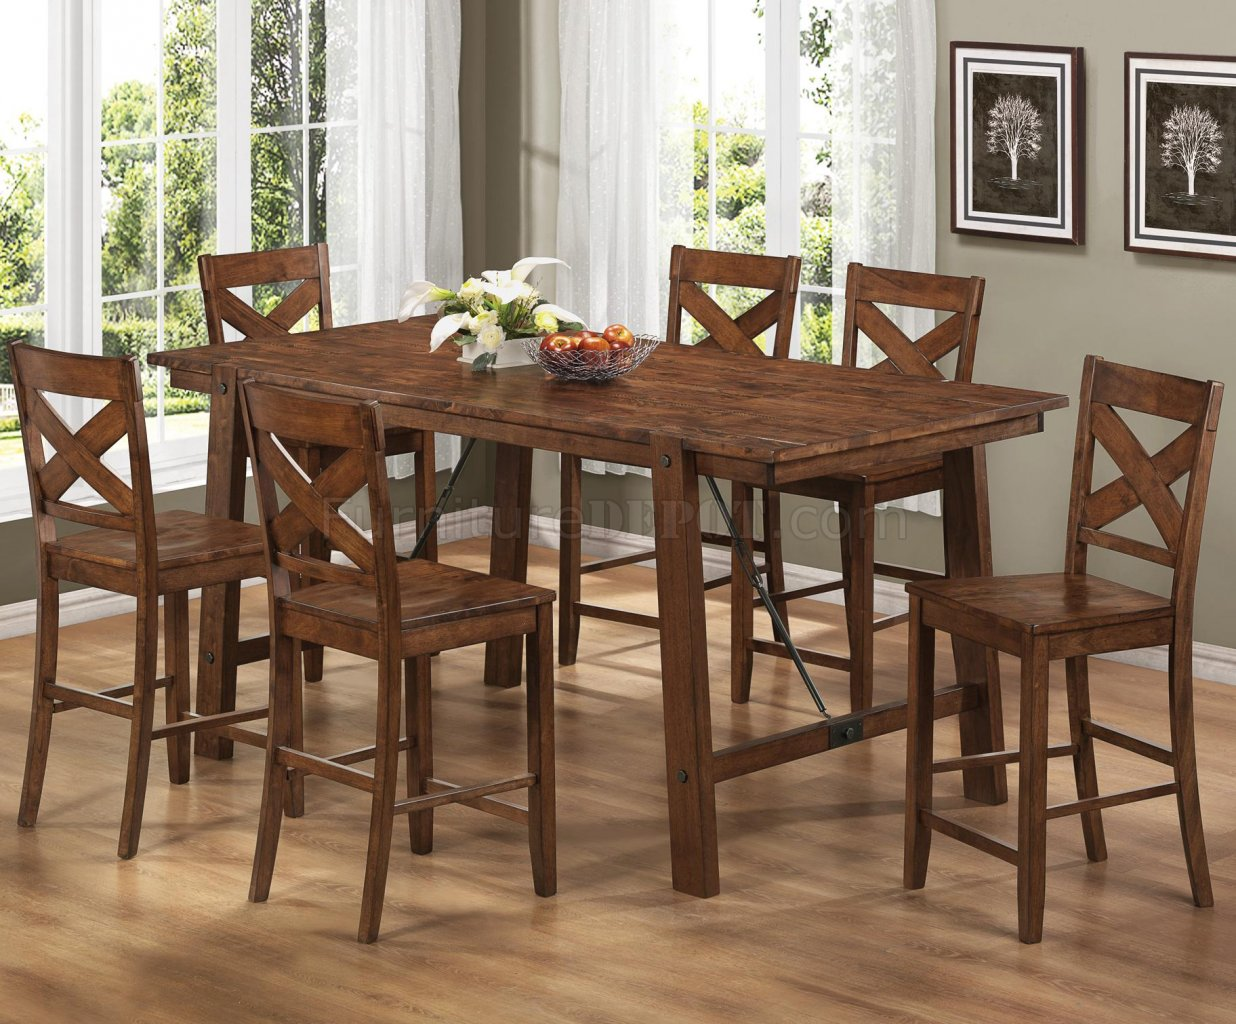 104188 lawson counter height dining table by coaster w options crds